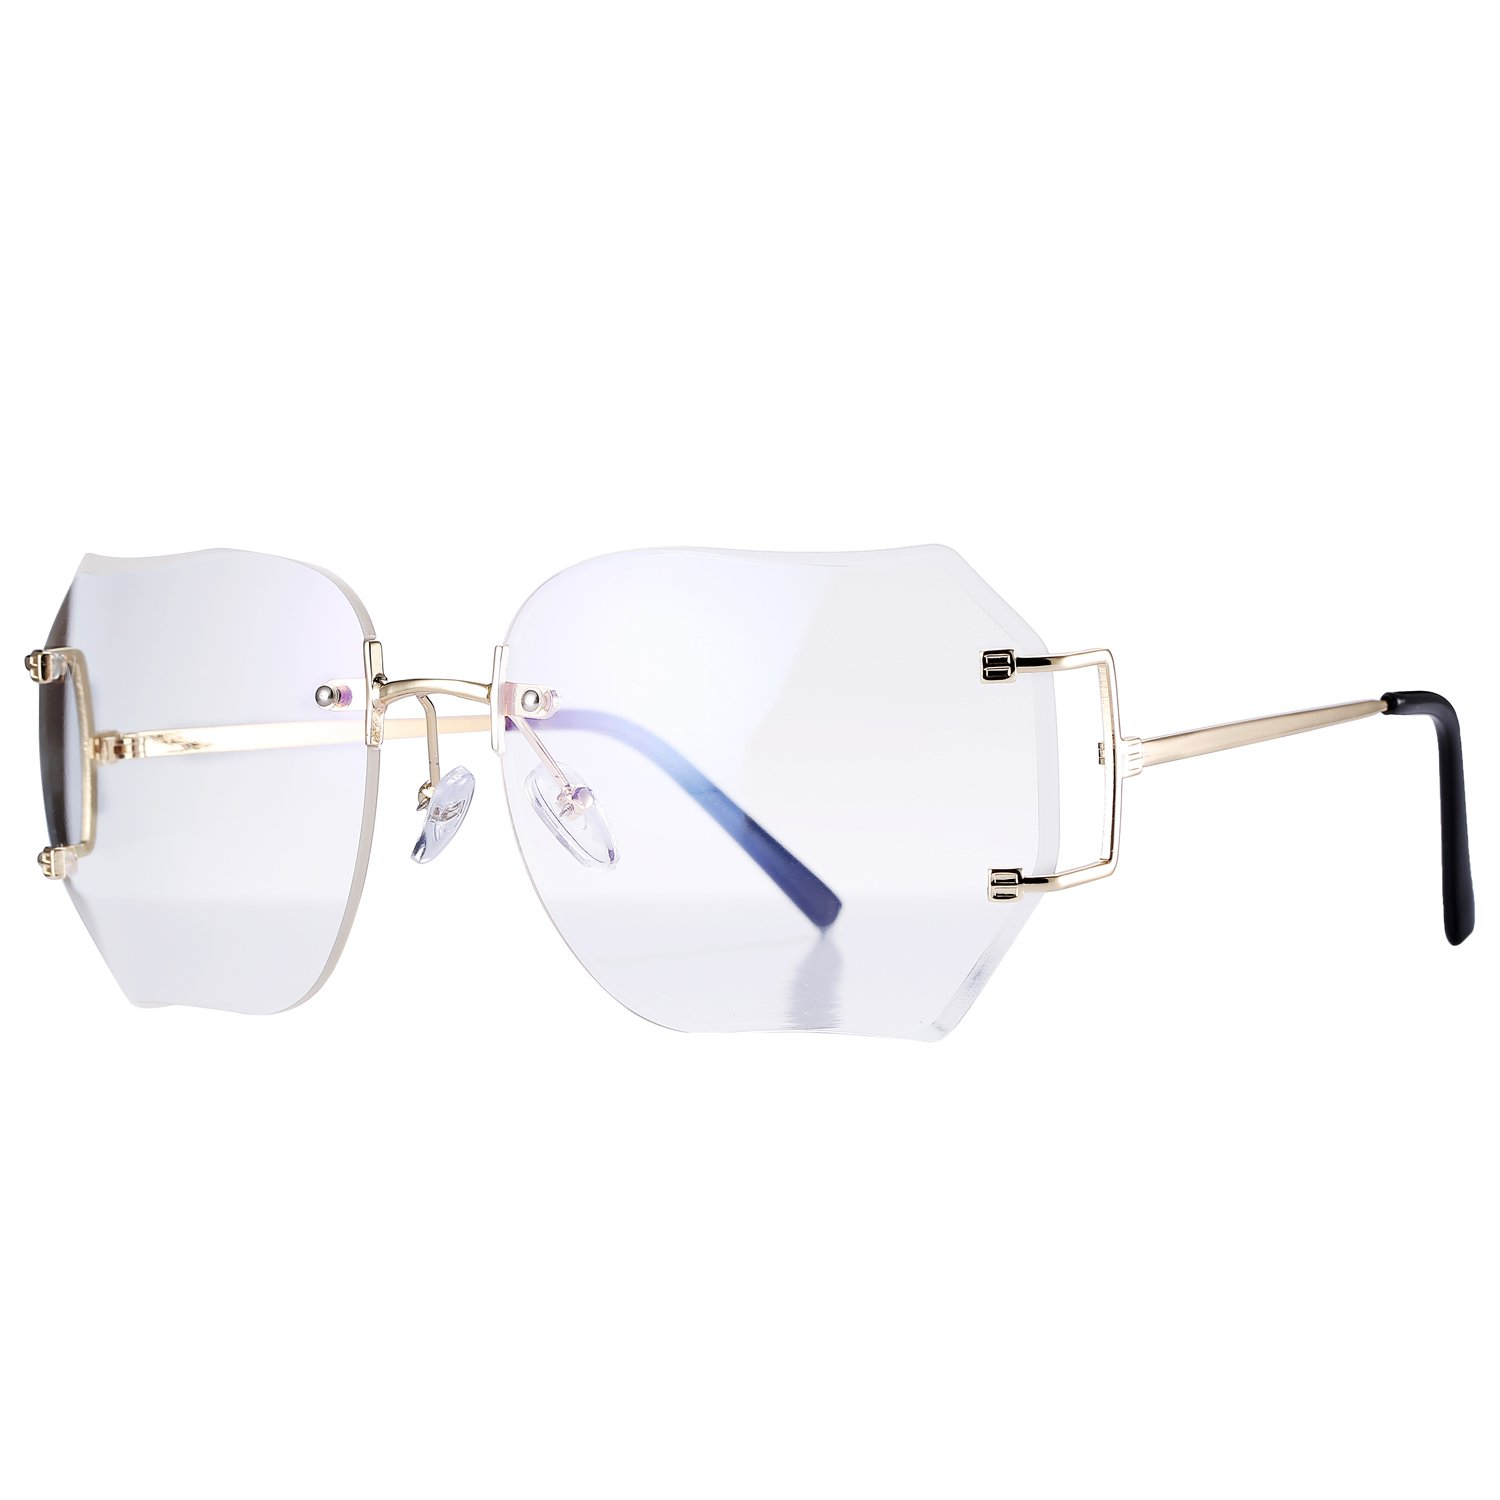 Pro Acme Fashion Oversized Rimless Sunglasses Women Clear Lens Available (Clear) by Pro Acme